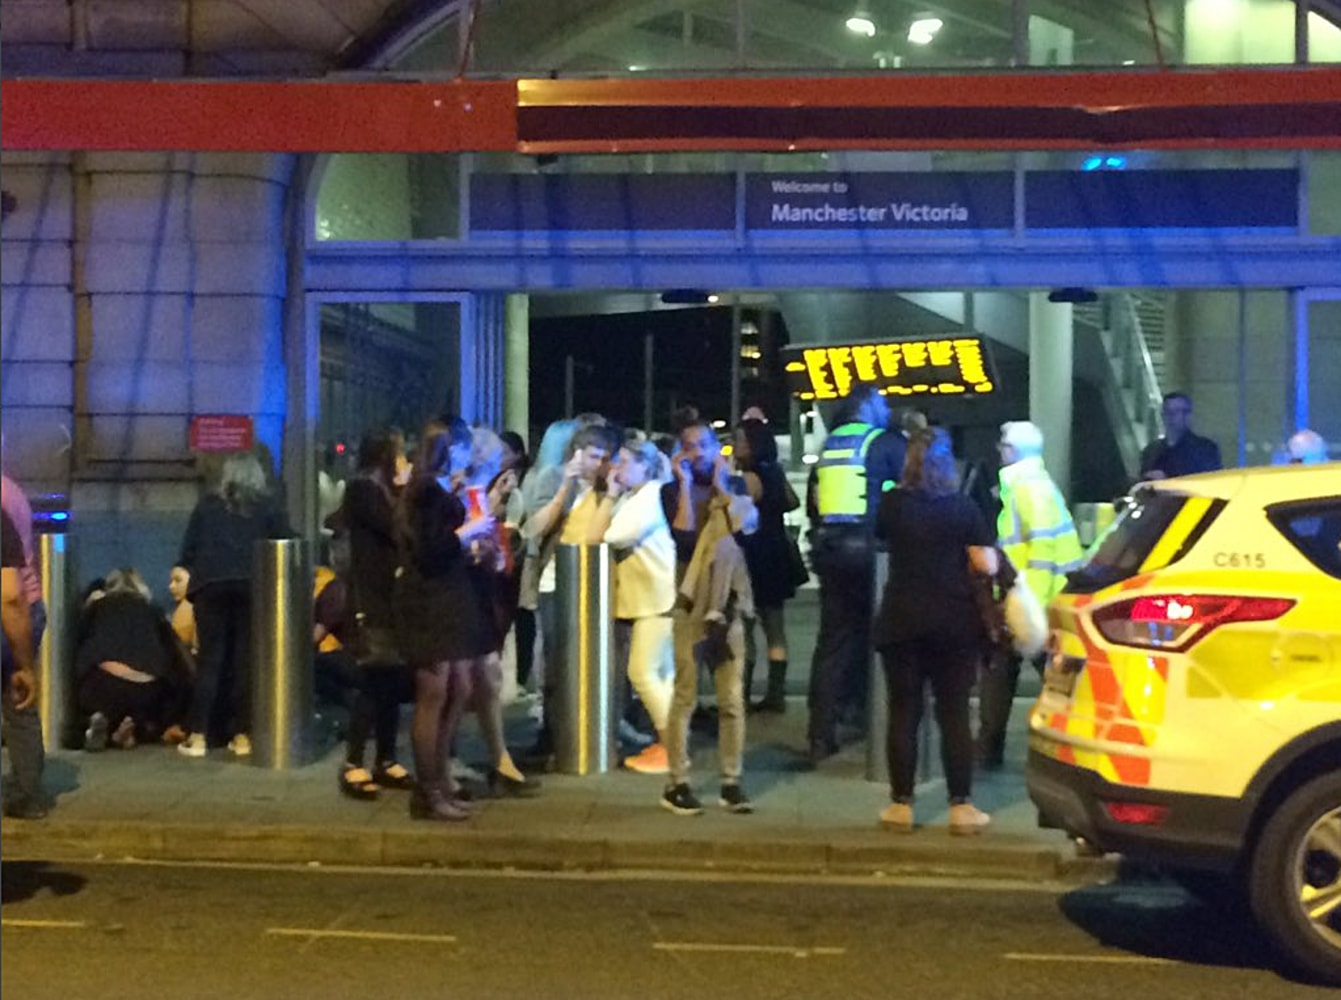 19 killed in terror attack at United Kingdom pop concert